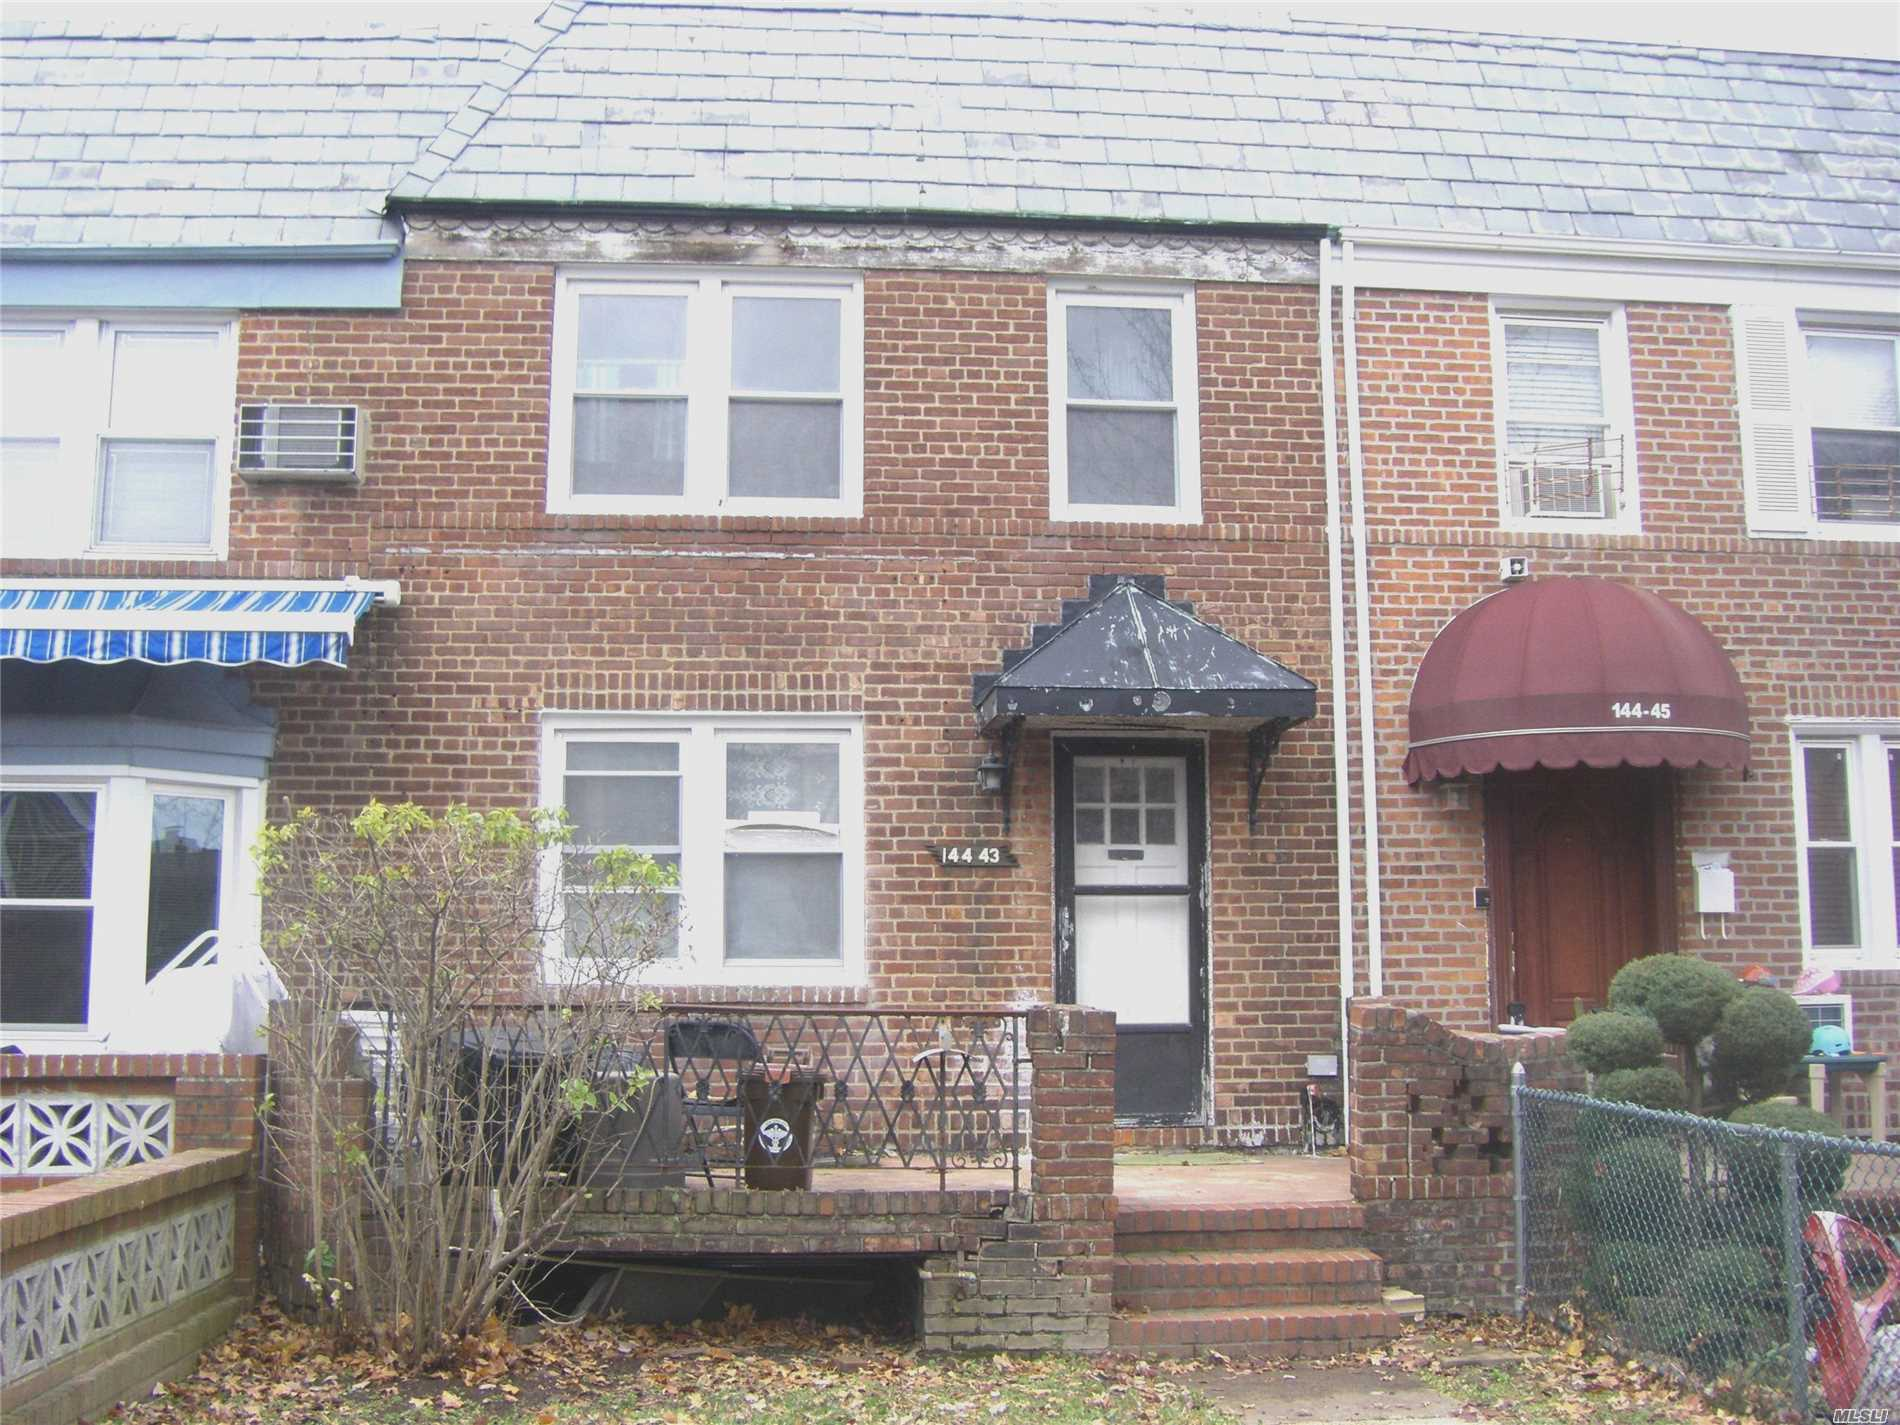 Attached House On A Quiet Block W Garage And Basement. House Has Living Room, Dining Room, Kitchen, 3 Bedrooms, 1.5 Baths